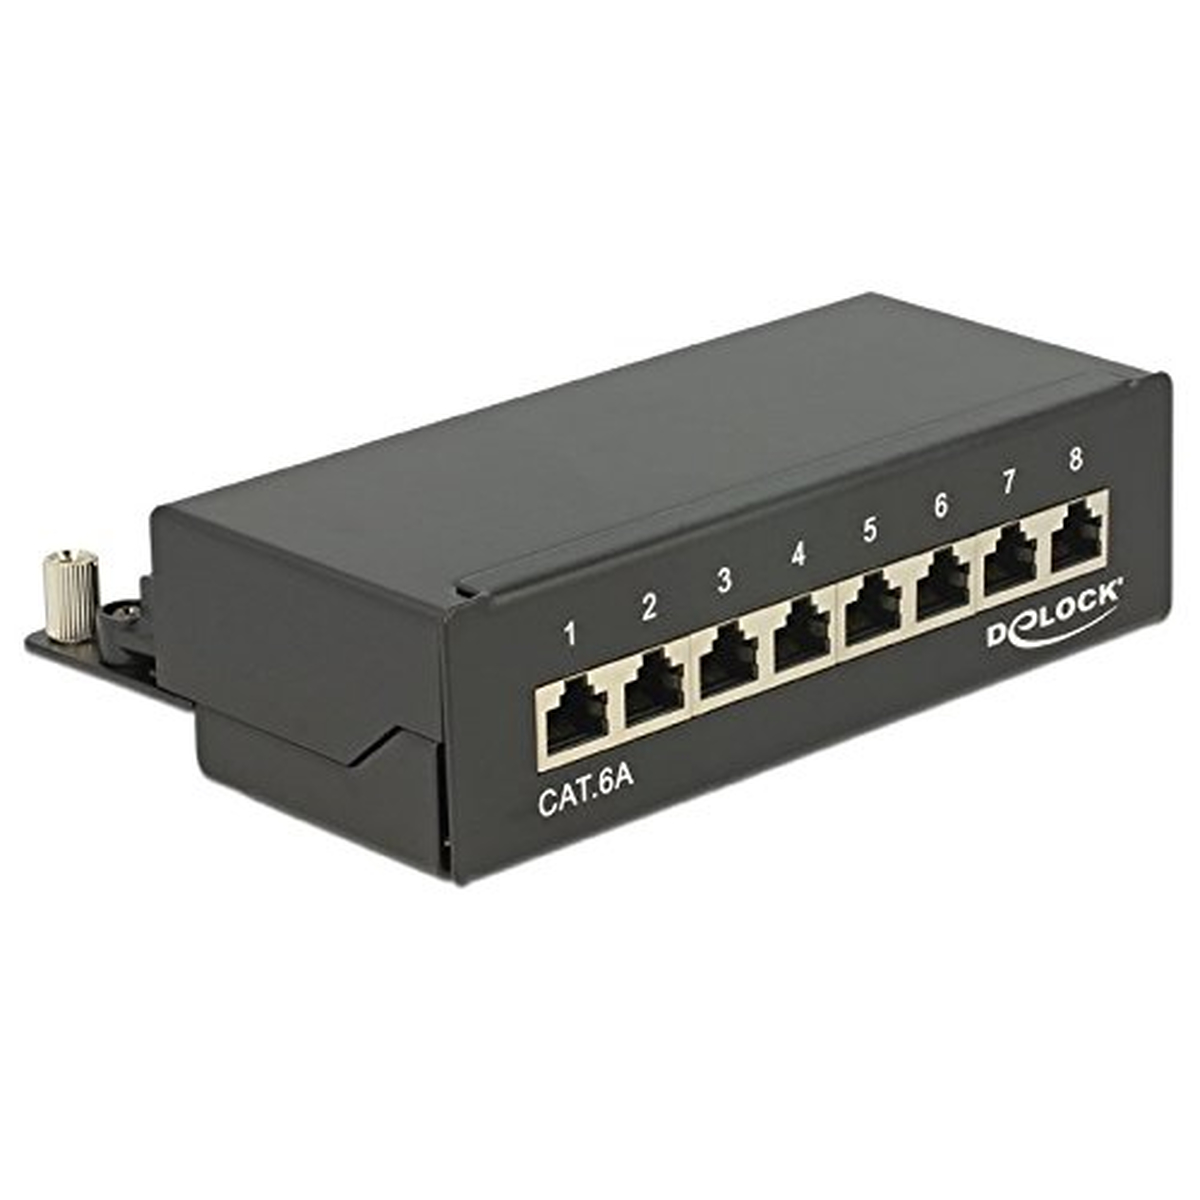 DeLOCK Patchpanel Desktop 8 Port Cat.6A schwarz